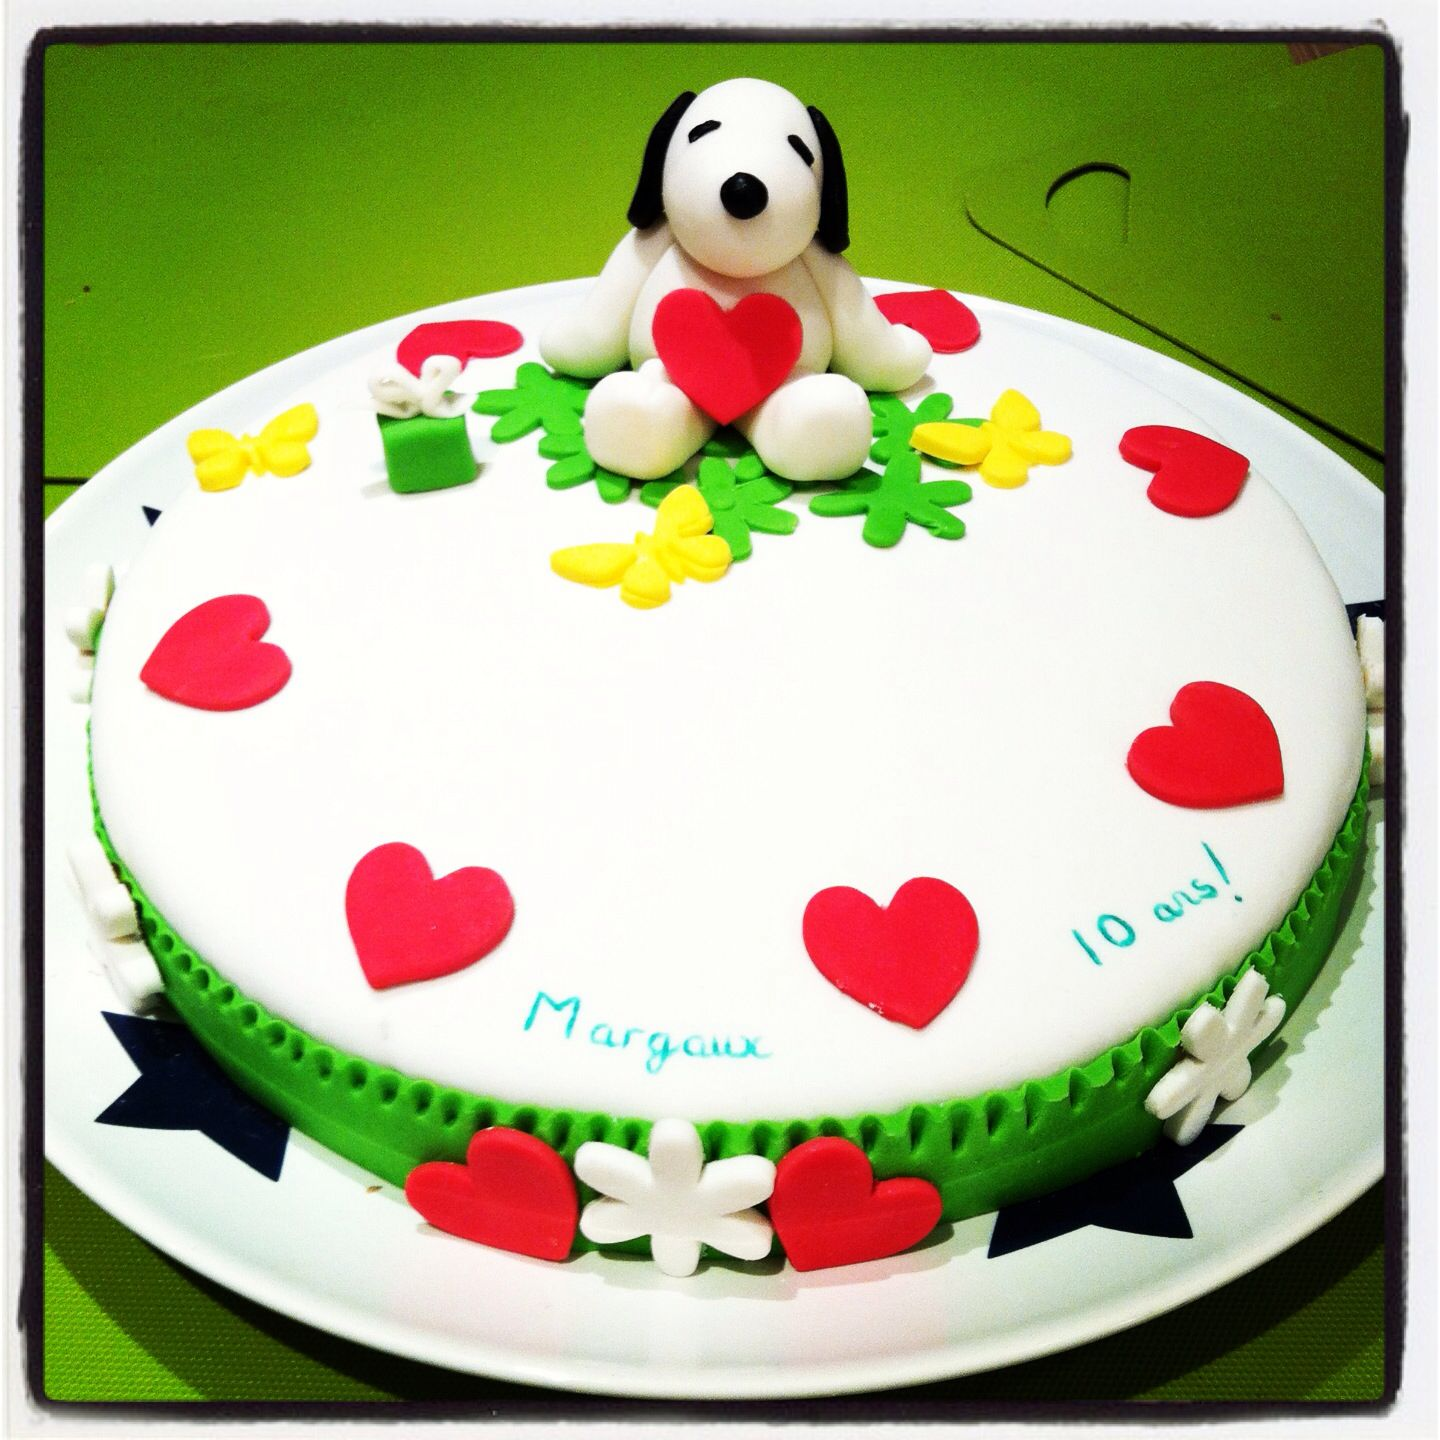 Birthday Cake Snoopy Snoopy Pinterest Snoopy And Birthday Cakes